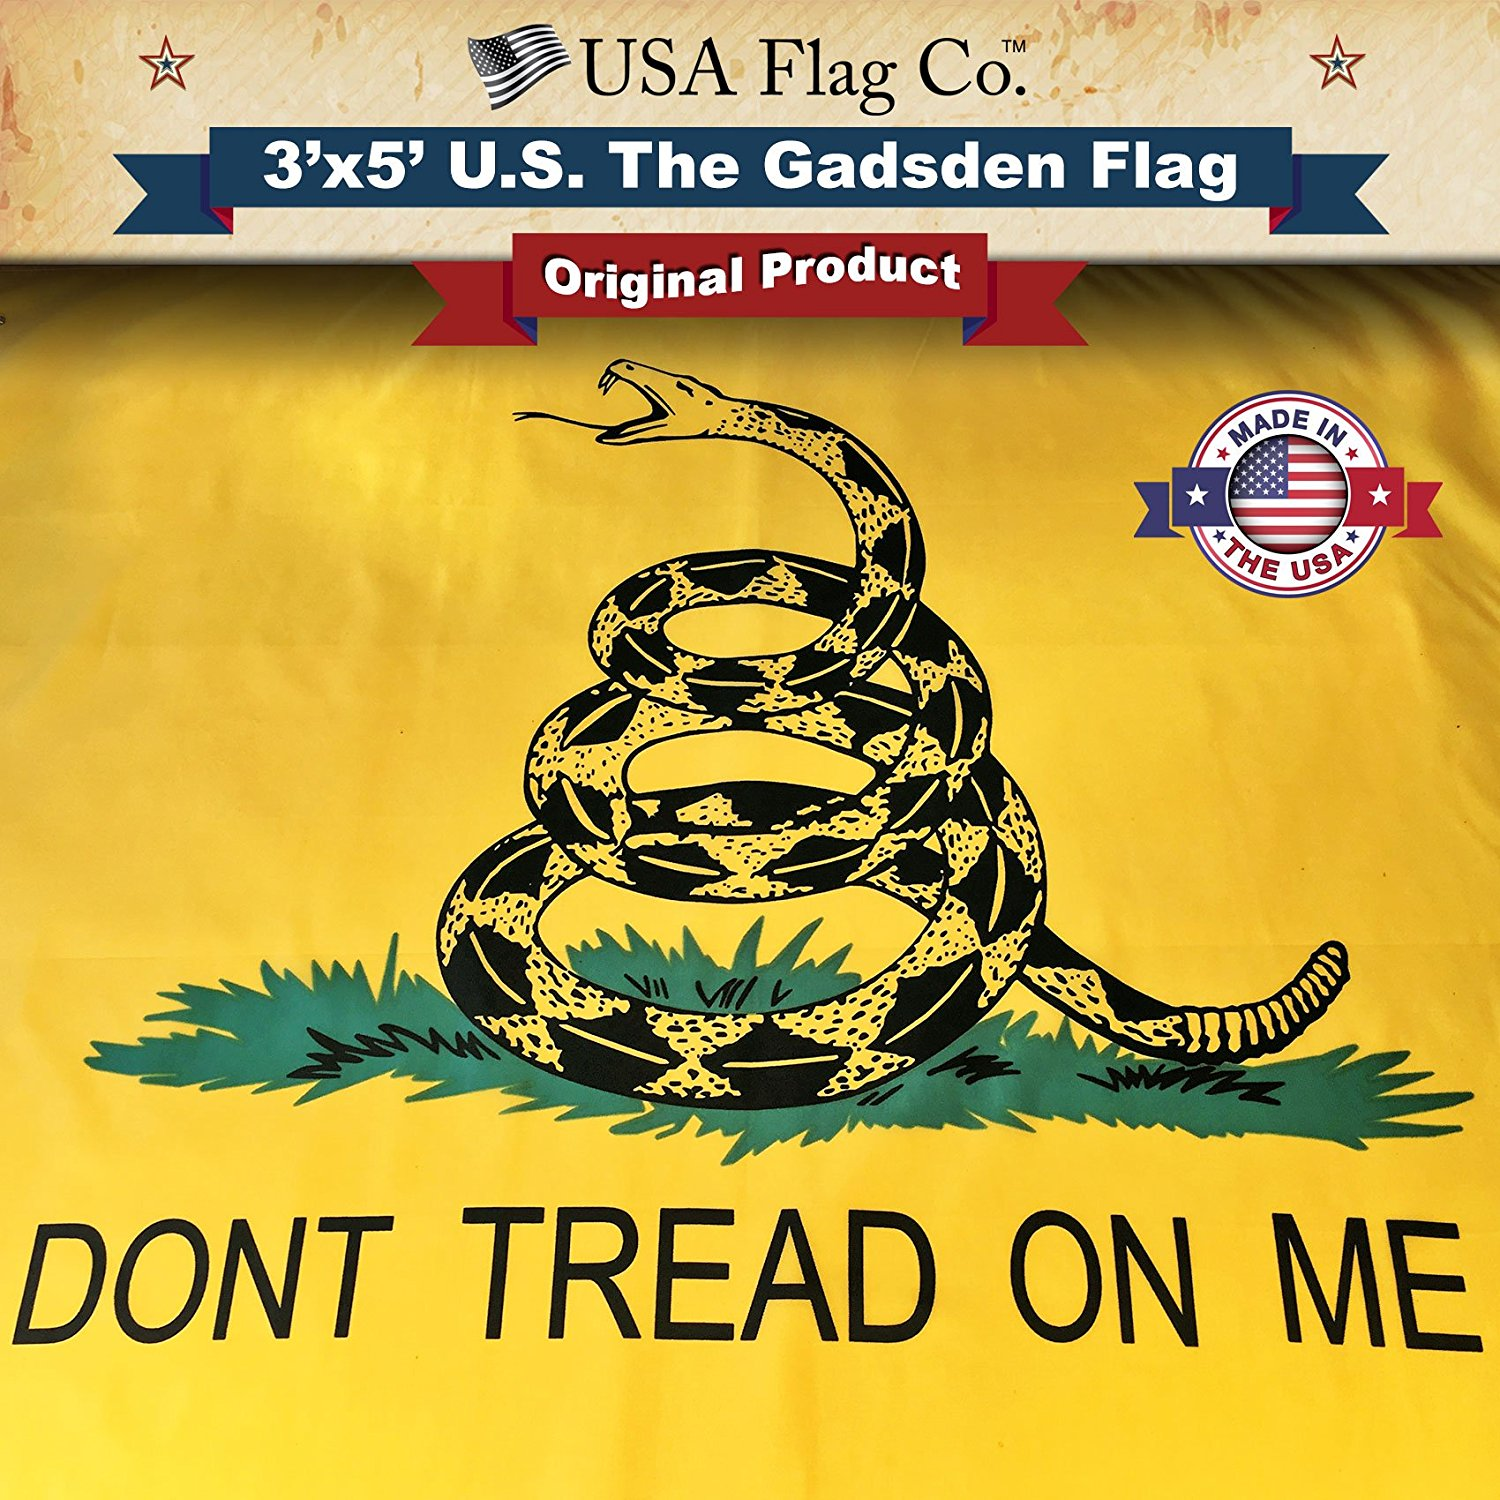 Gadsden Flag (Don't Tread On Me) by USA Flag Co. is 100% American Made: The BEST 3x5 Outdoor US Flags, Made in the USA (3 x 5 foot)